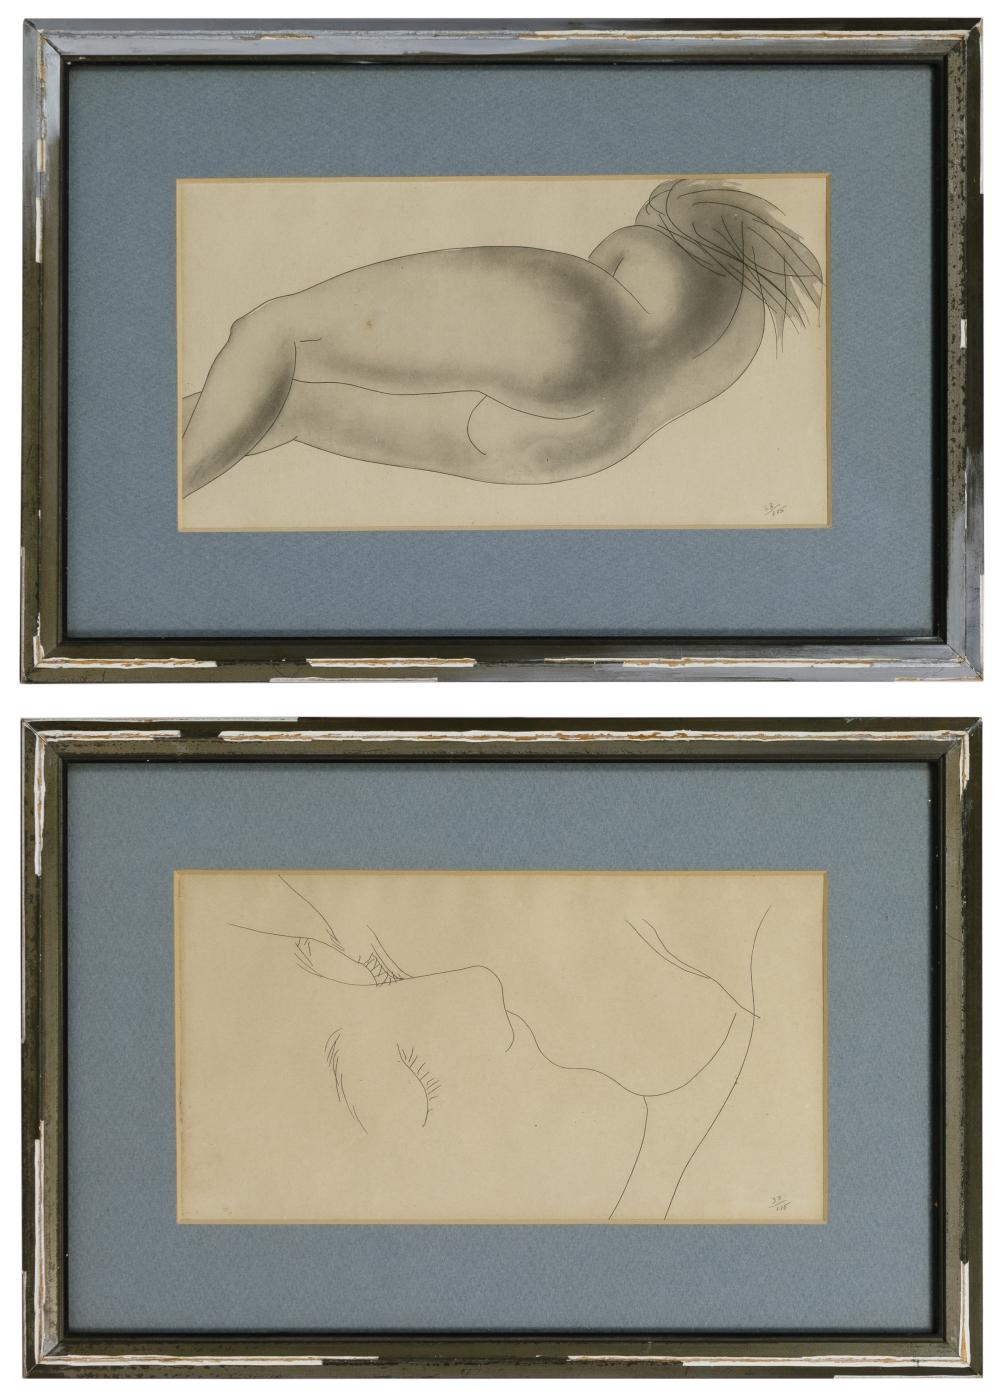 (After) Hans Erni (Swiss, 1909-2015) Drypoint Etchings